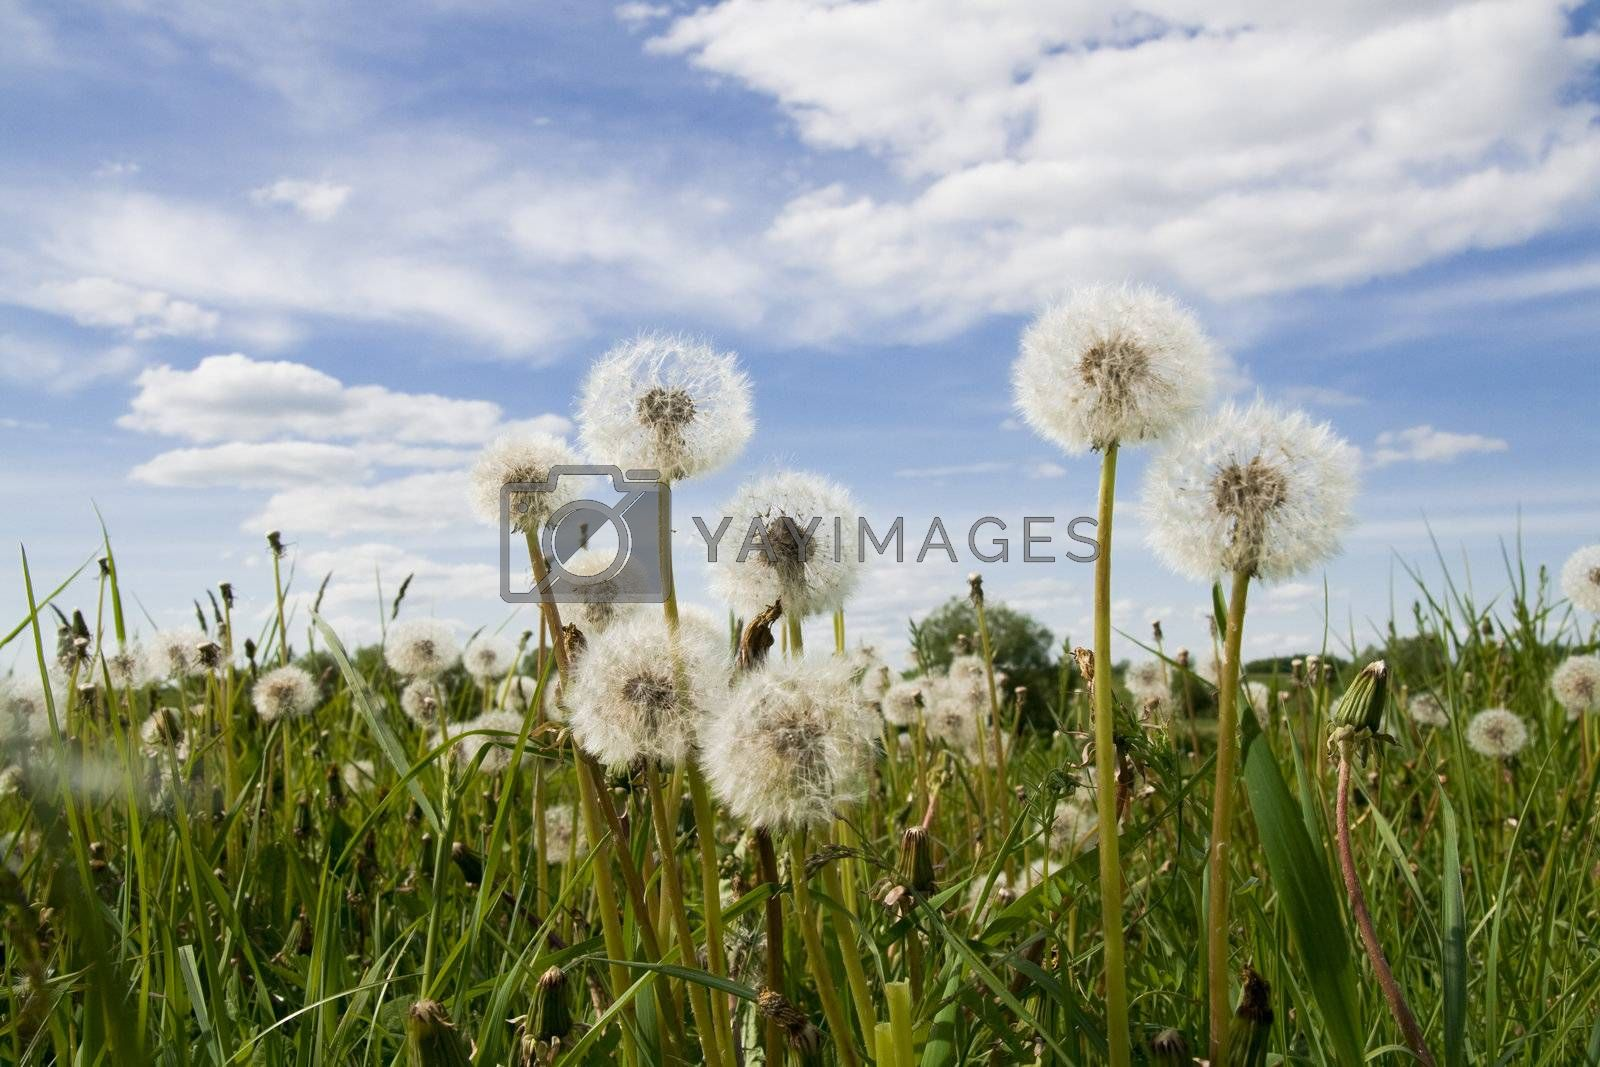 Extra close up of the dandelion on the cloudy sky background